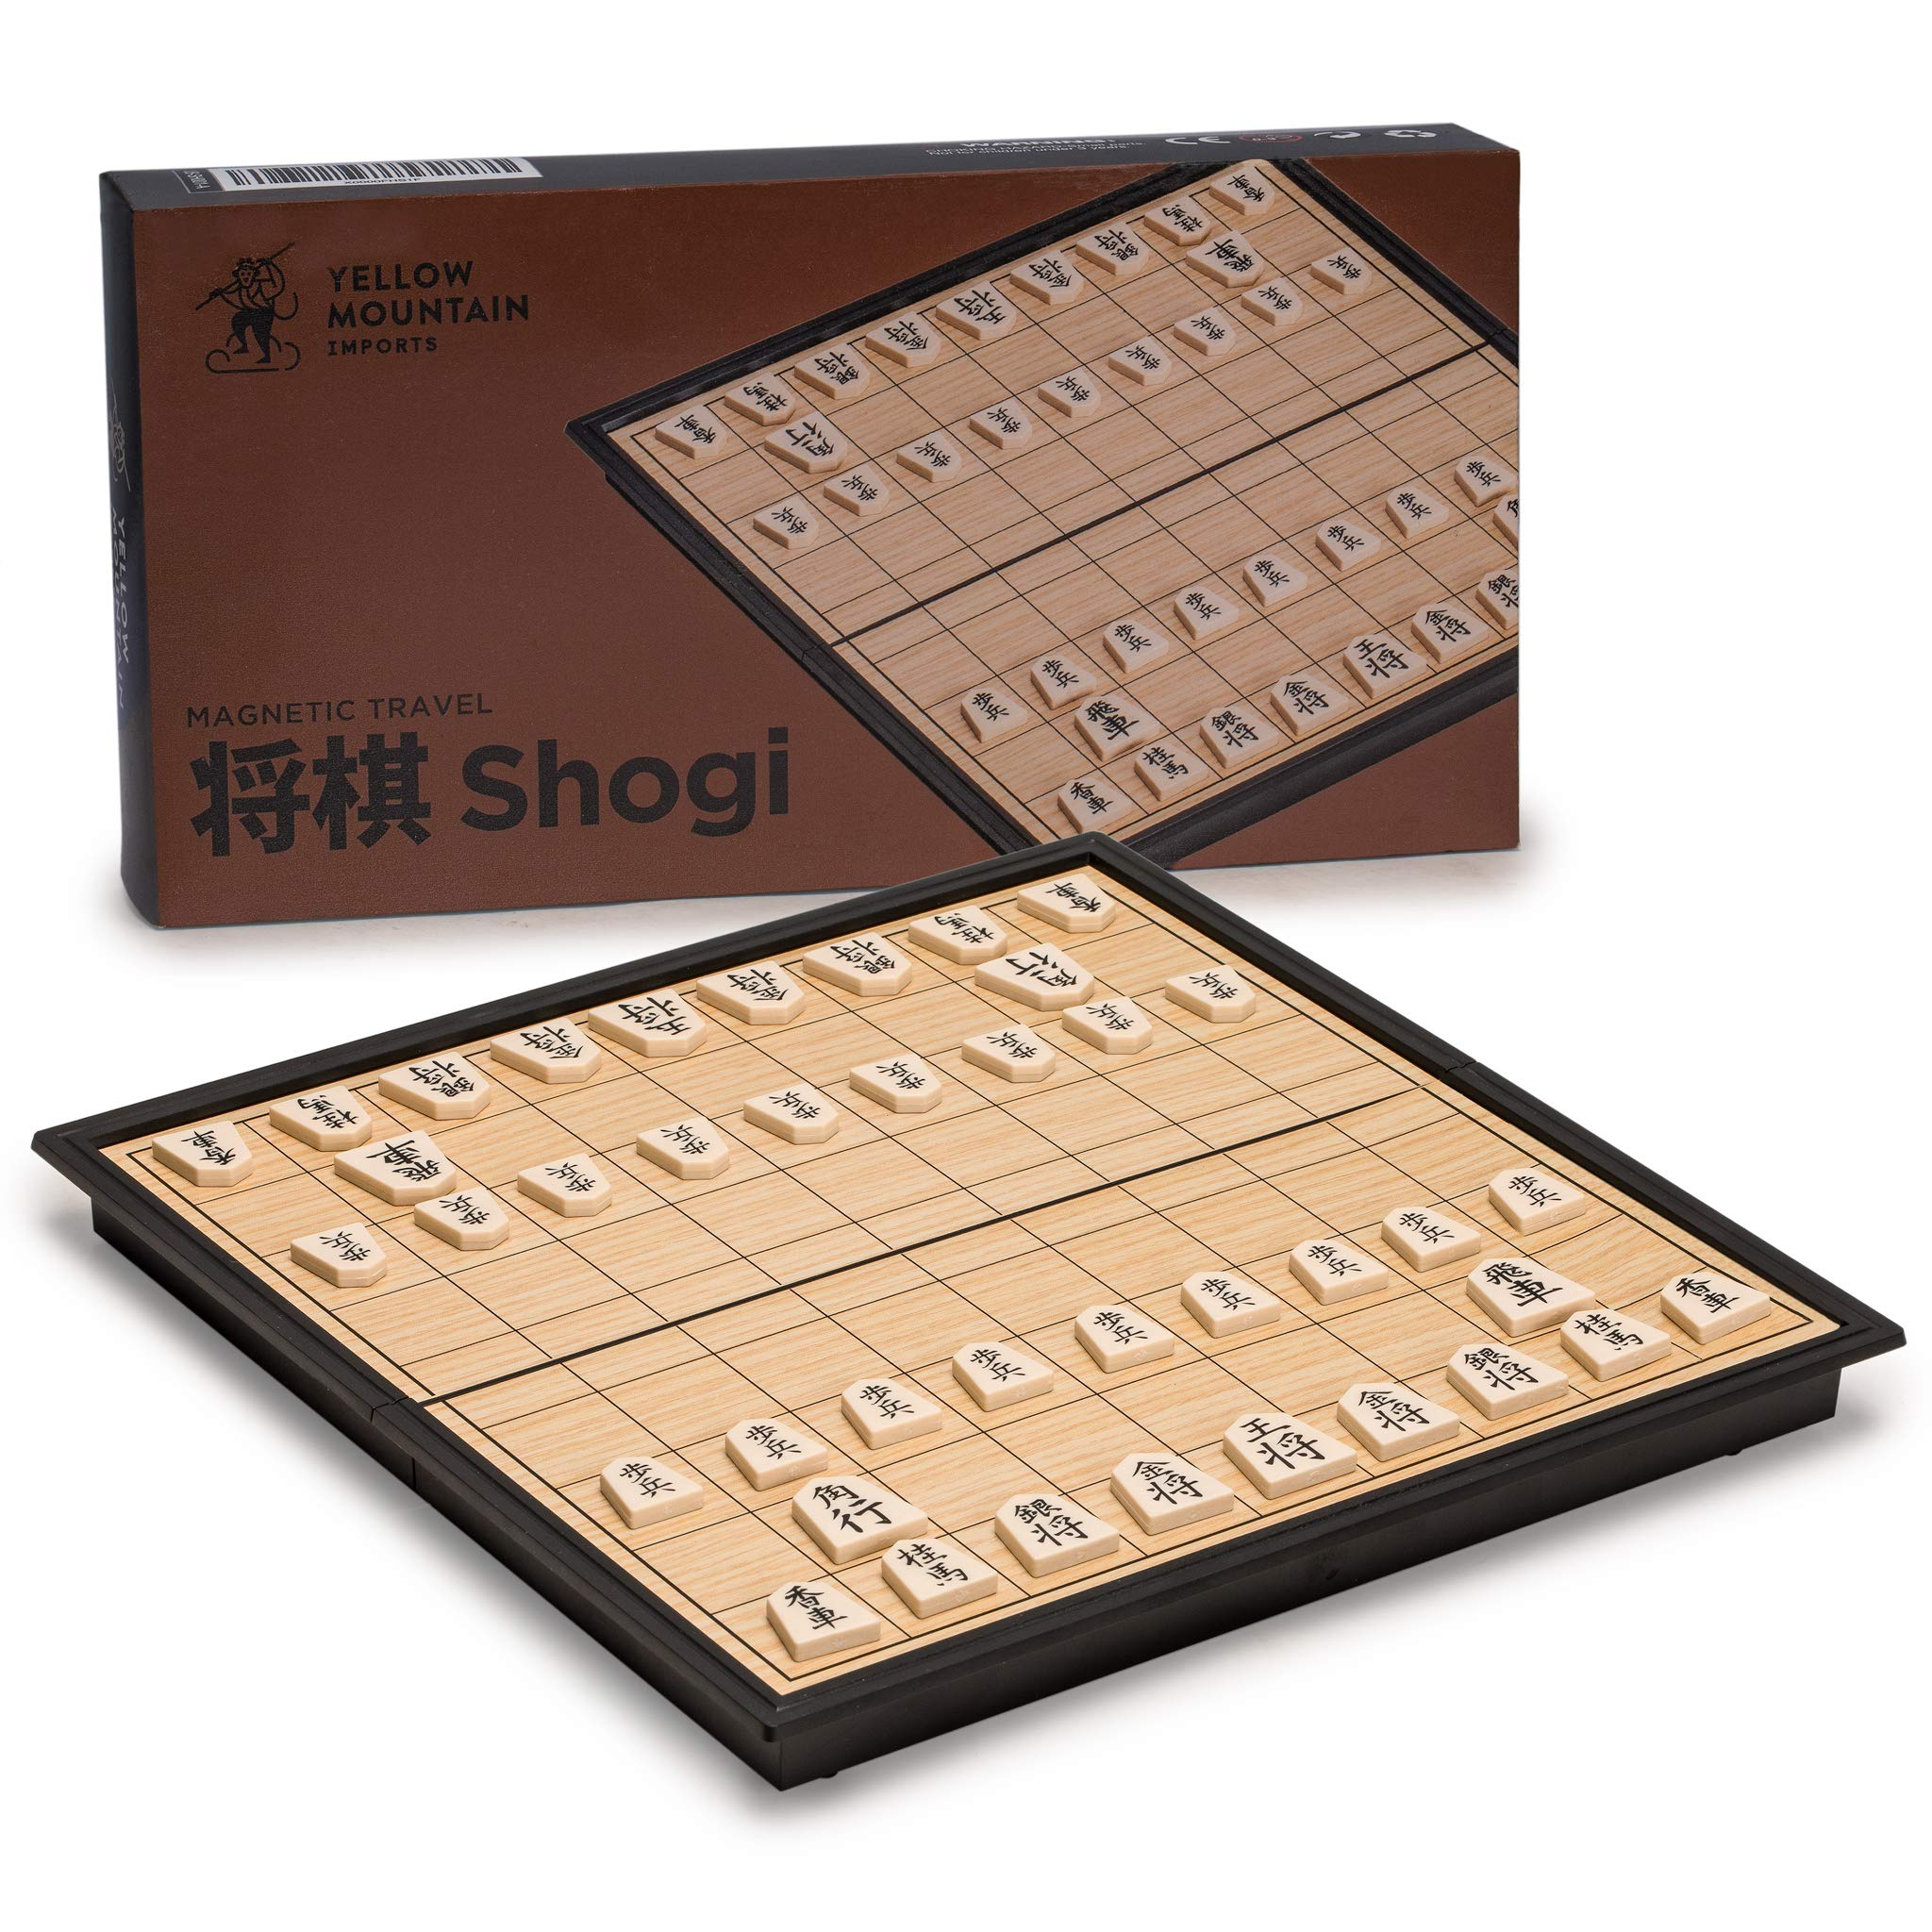 Yellow Mountain Imports Shogi Travel Game Set with Magnetic 9.75-Inch Board and Game Pieces by Yellow Mountain Imports